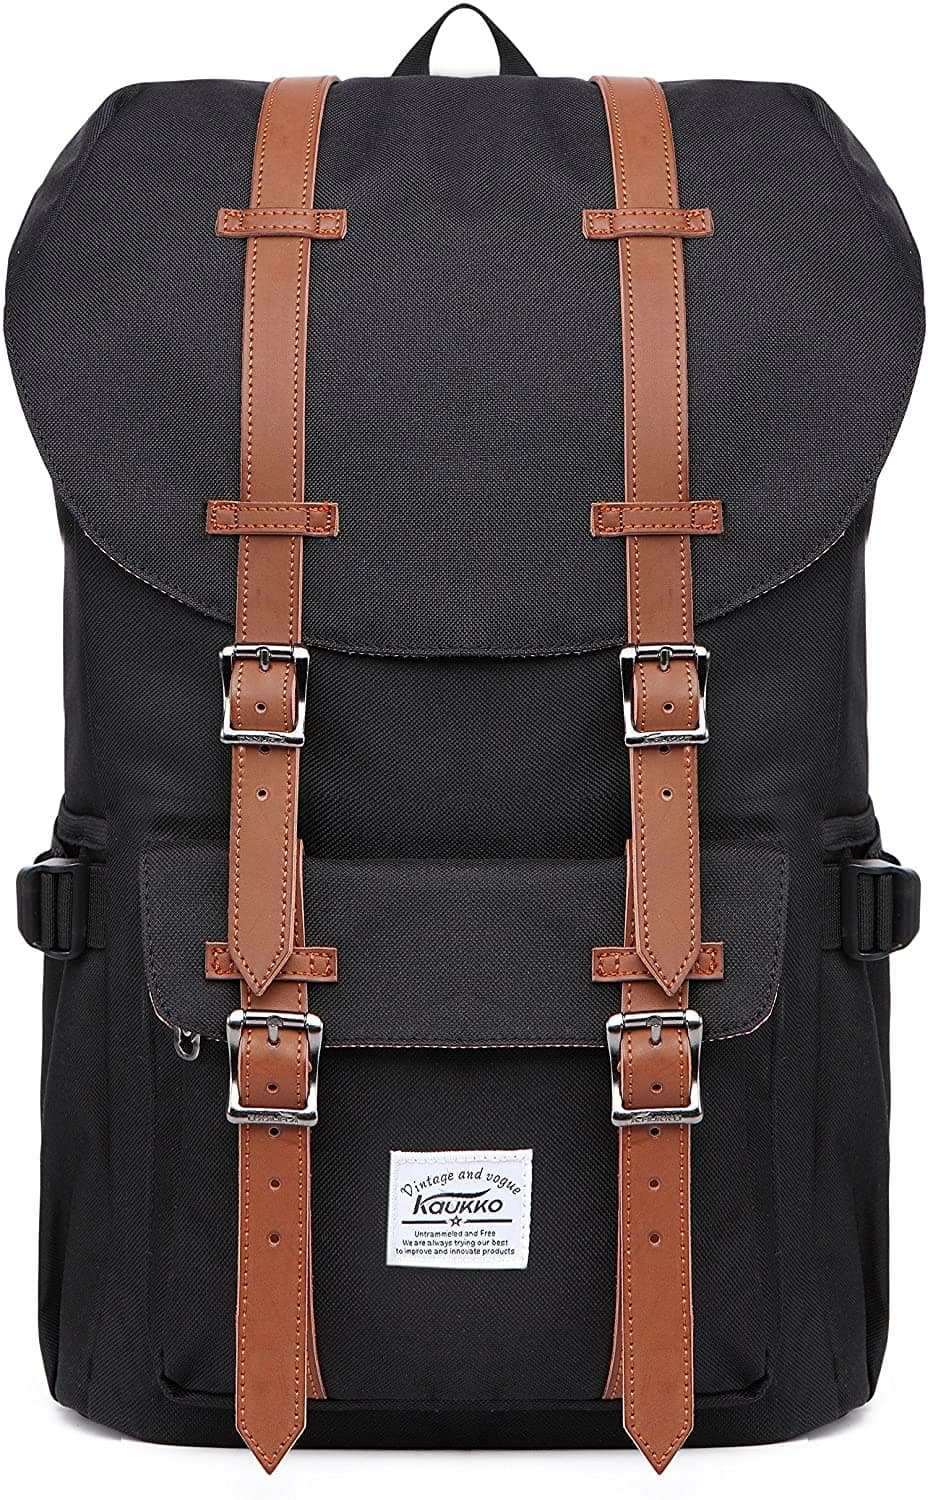 """Travel Laptop Backpack, Outdoor Rucksack, School backpack Fits 15.6"""" for only $35.99+FS"""